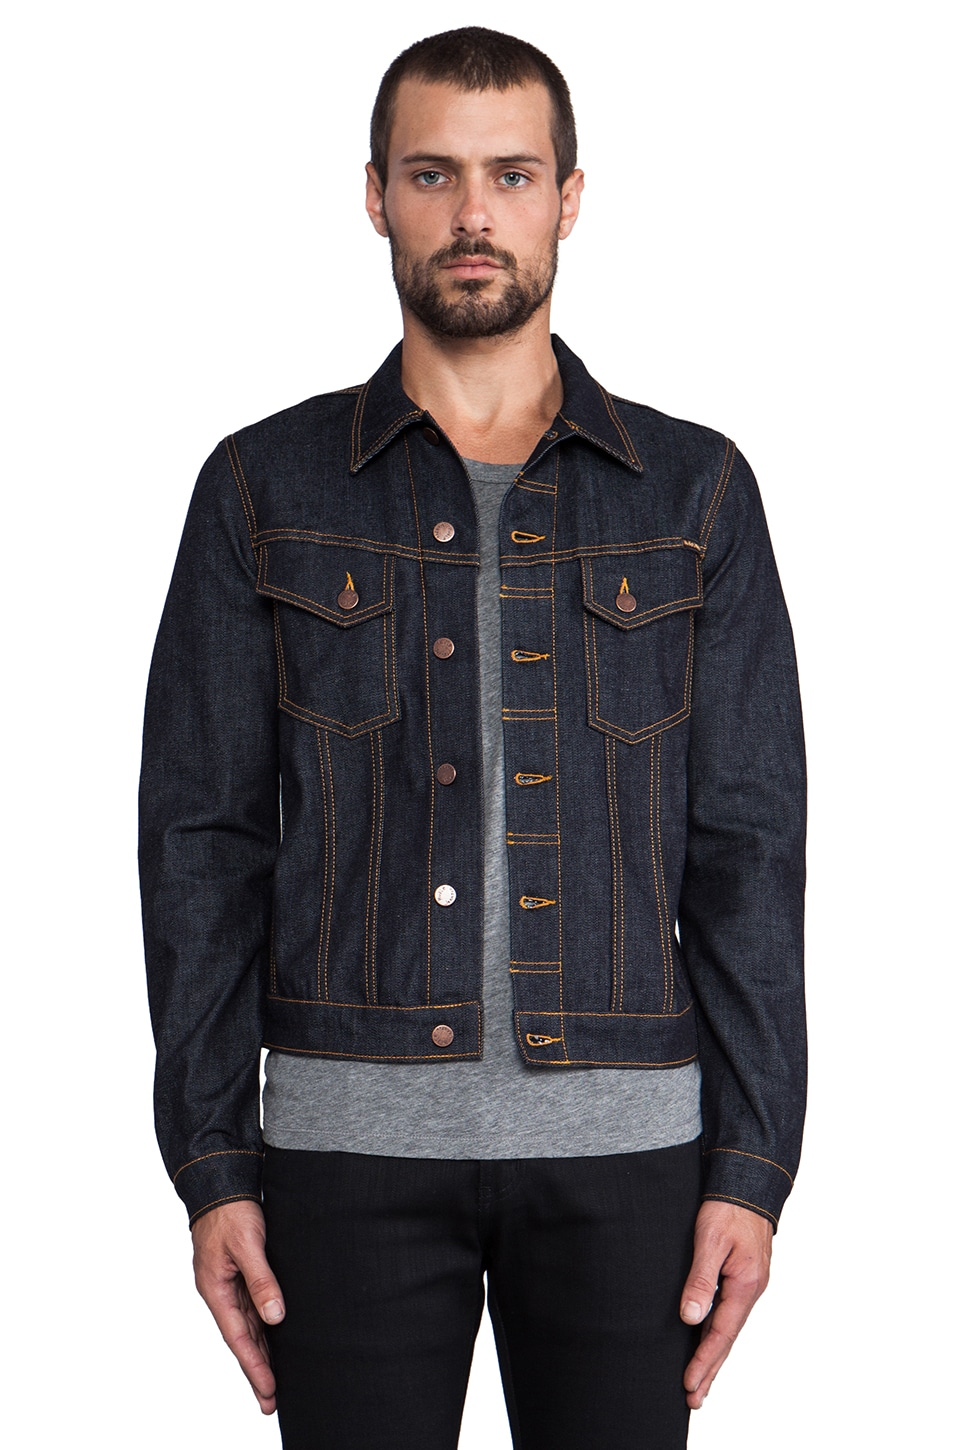 Nudie Jeans Perry Jean Jacket in Org. Dry Comfort